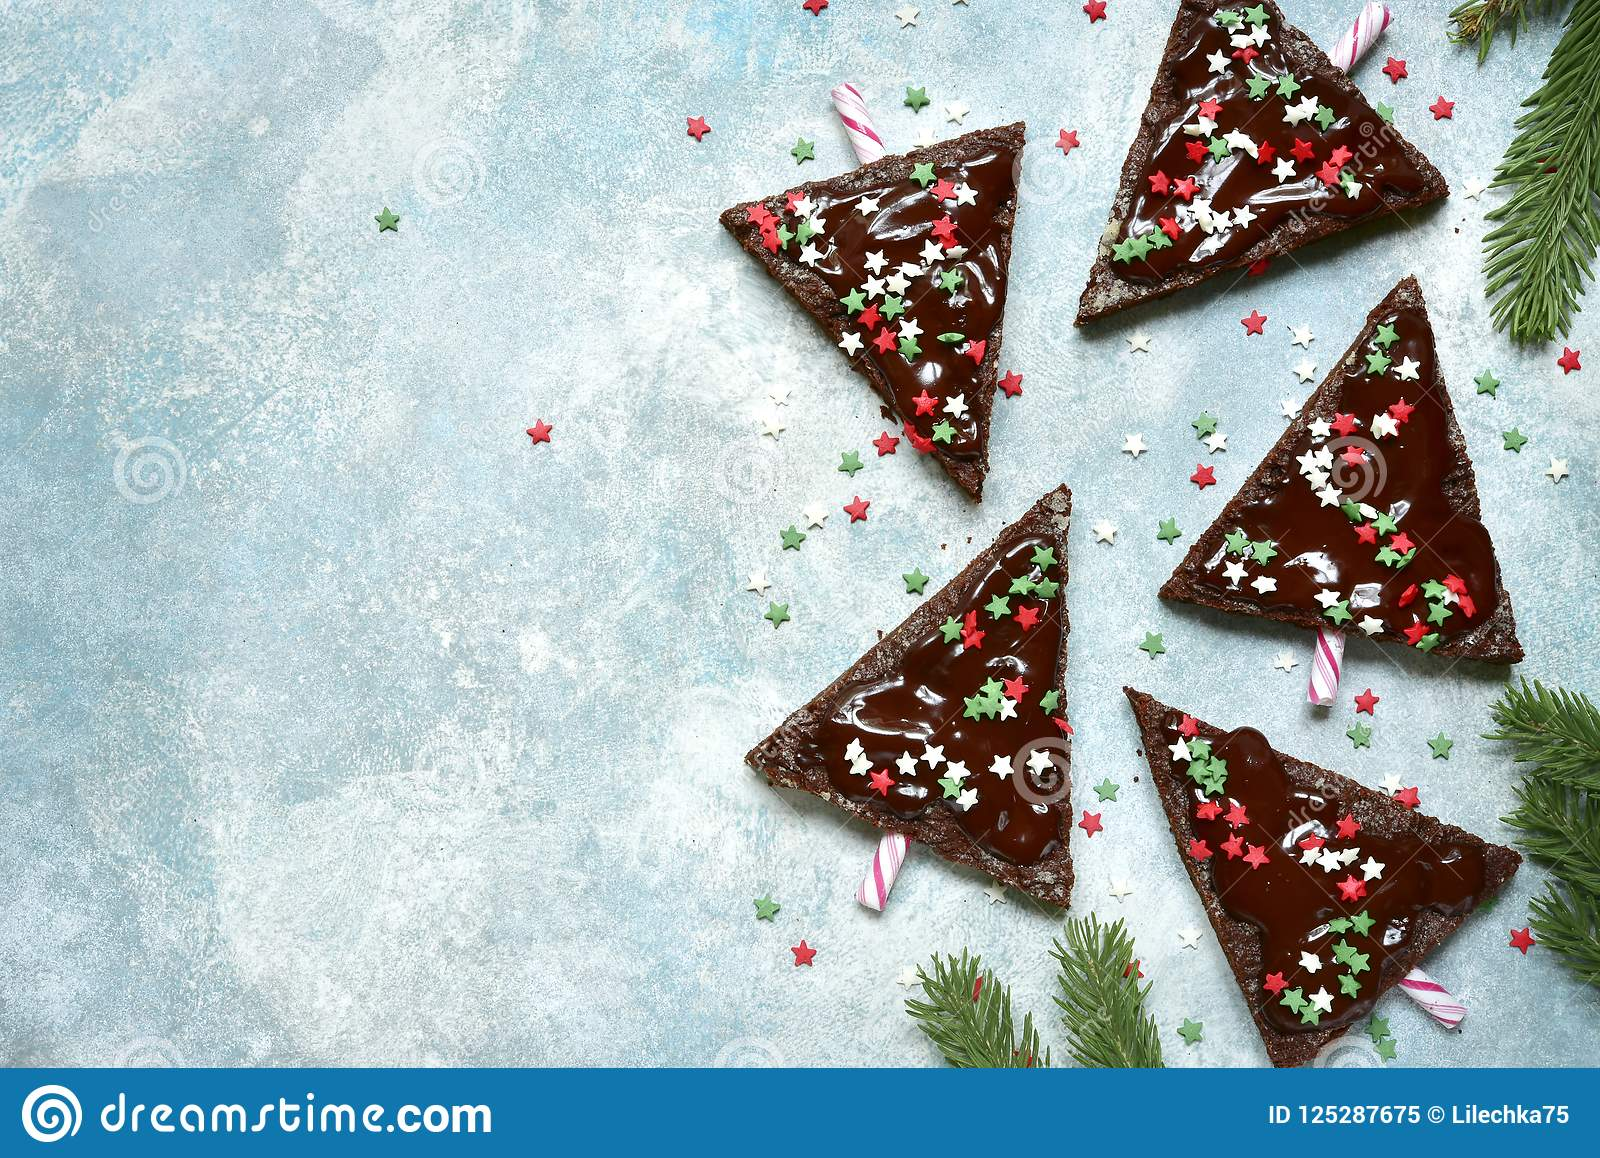 Christmas Tree Top View.Chocolate Christmas Tree Top View With Copy Space Stock